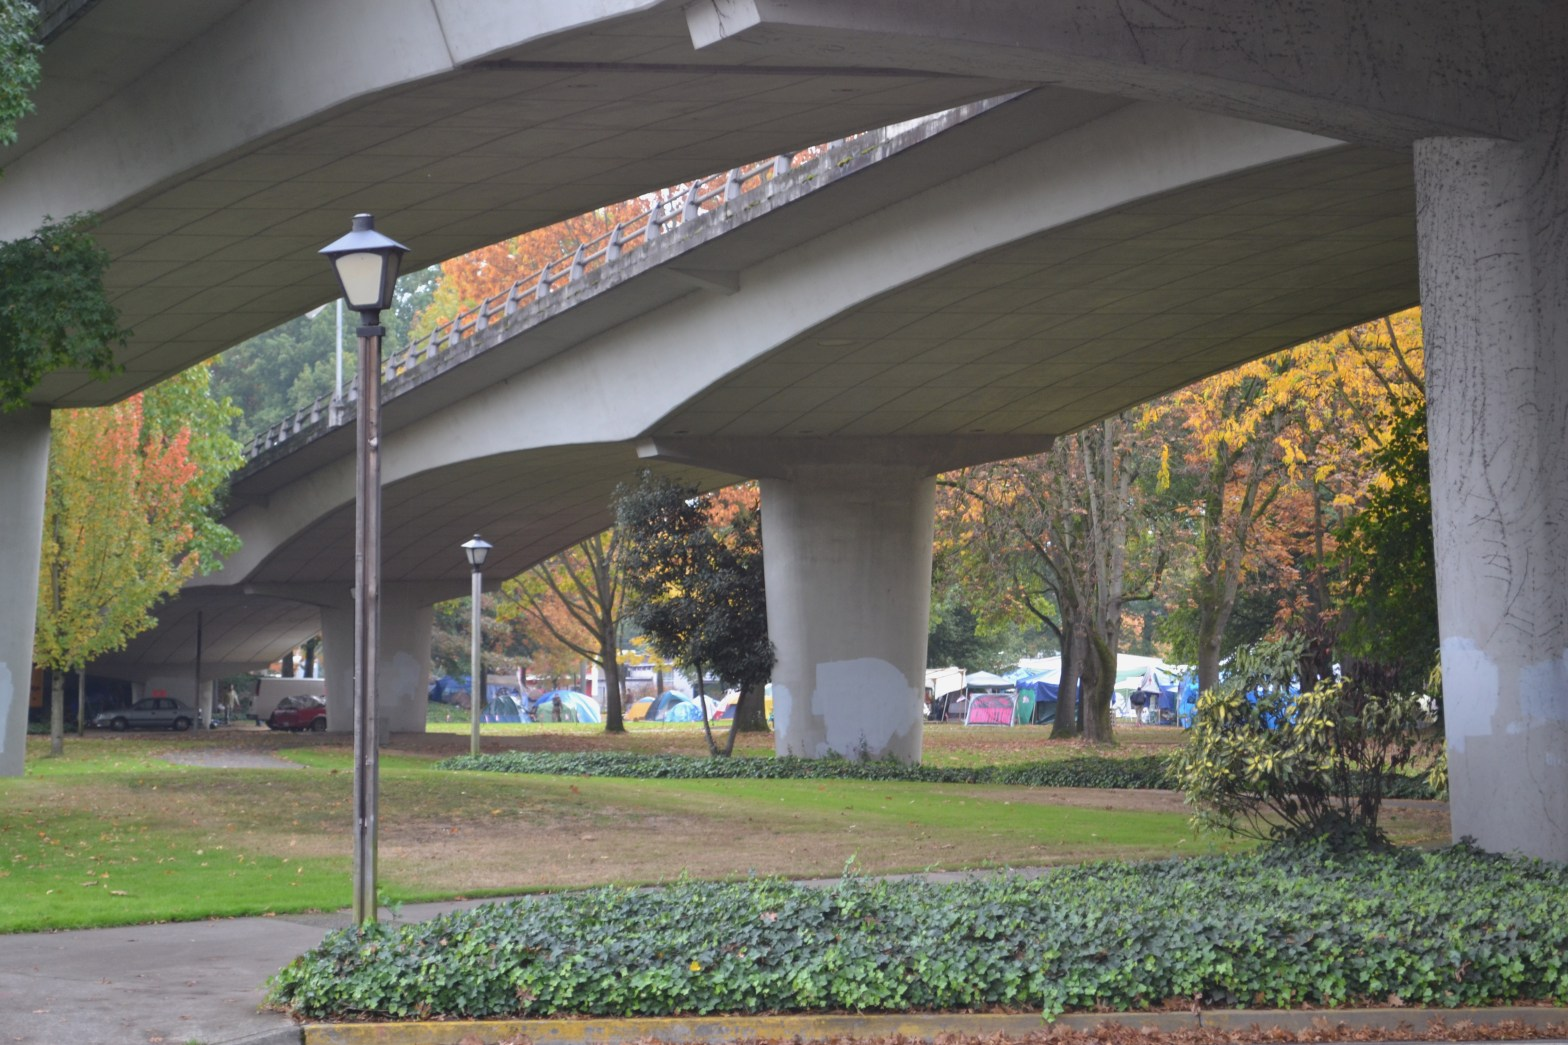 Photograph of Washington Jefferson Park in the autumn, with the I 105 bridge onramp arching over the park. A streetlamp is in the foreground, and there are no people in the picture